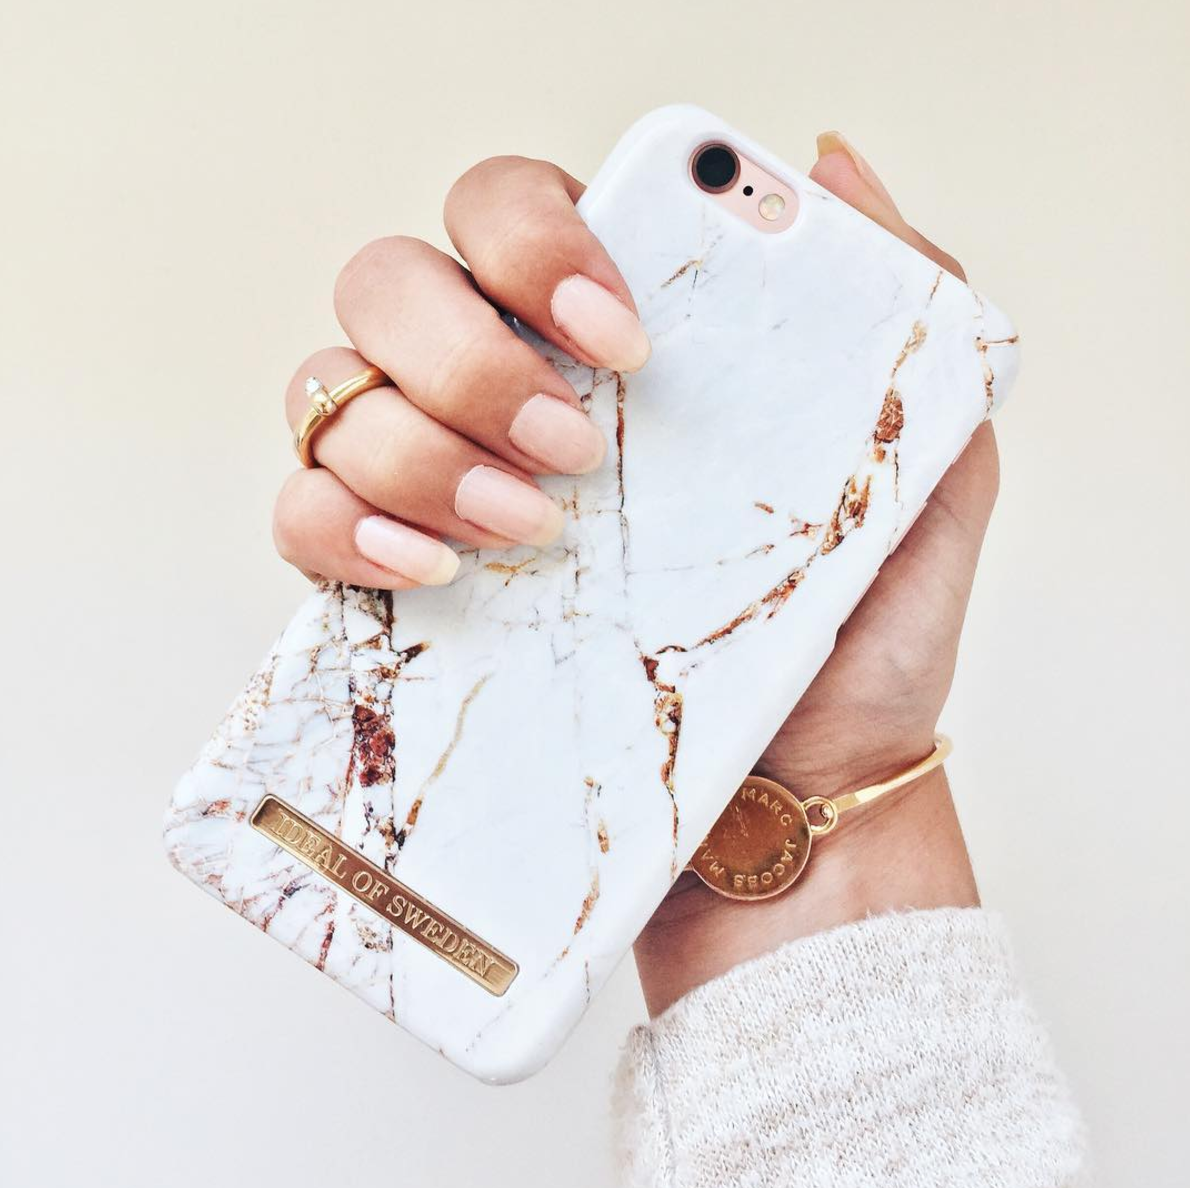 Carrara Gold by  ellenstubner - Fashion case phone cases iphone inspiration  iDeal of Sweden  marble  carrara  gold  fashion  inspo  iphone  marmor 756fbd5fca232